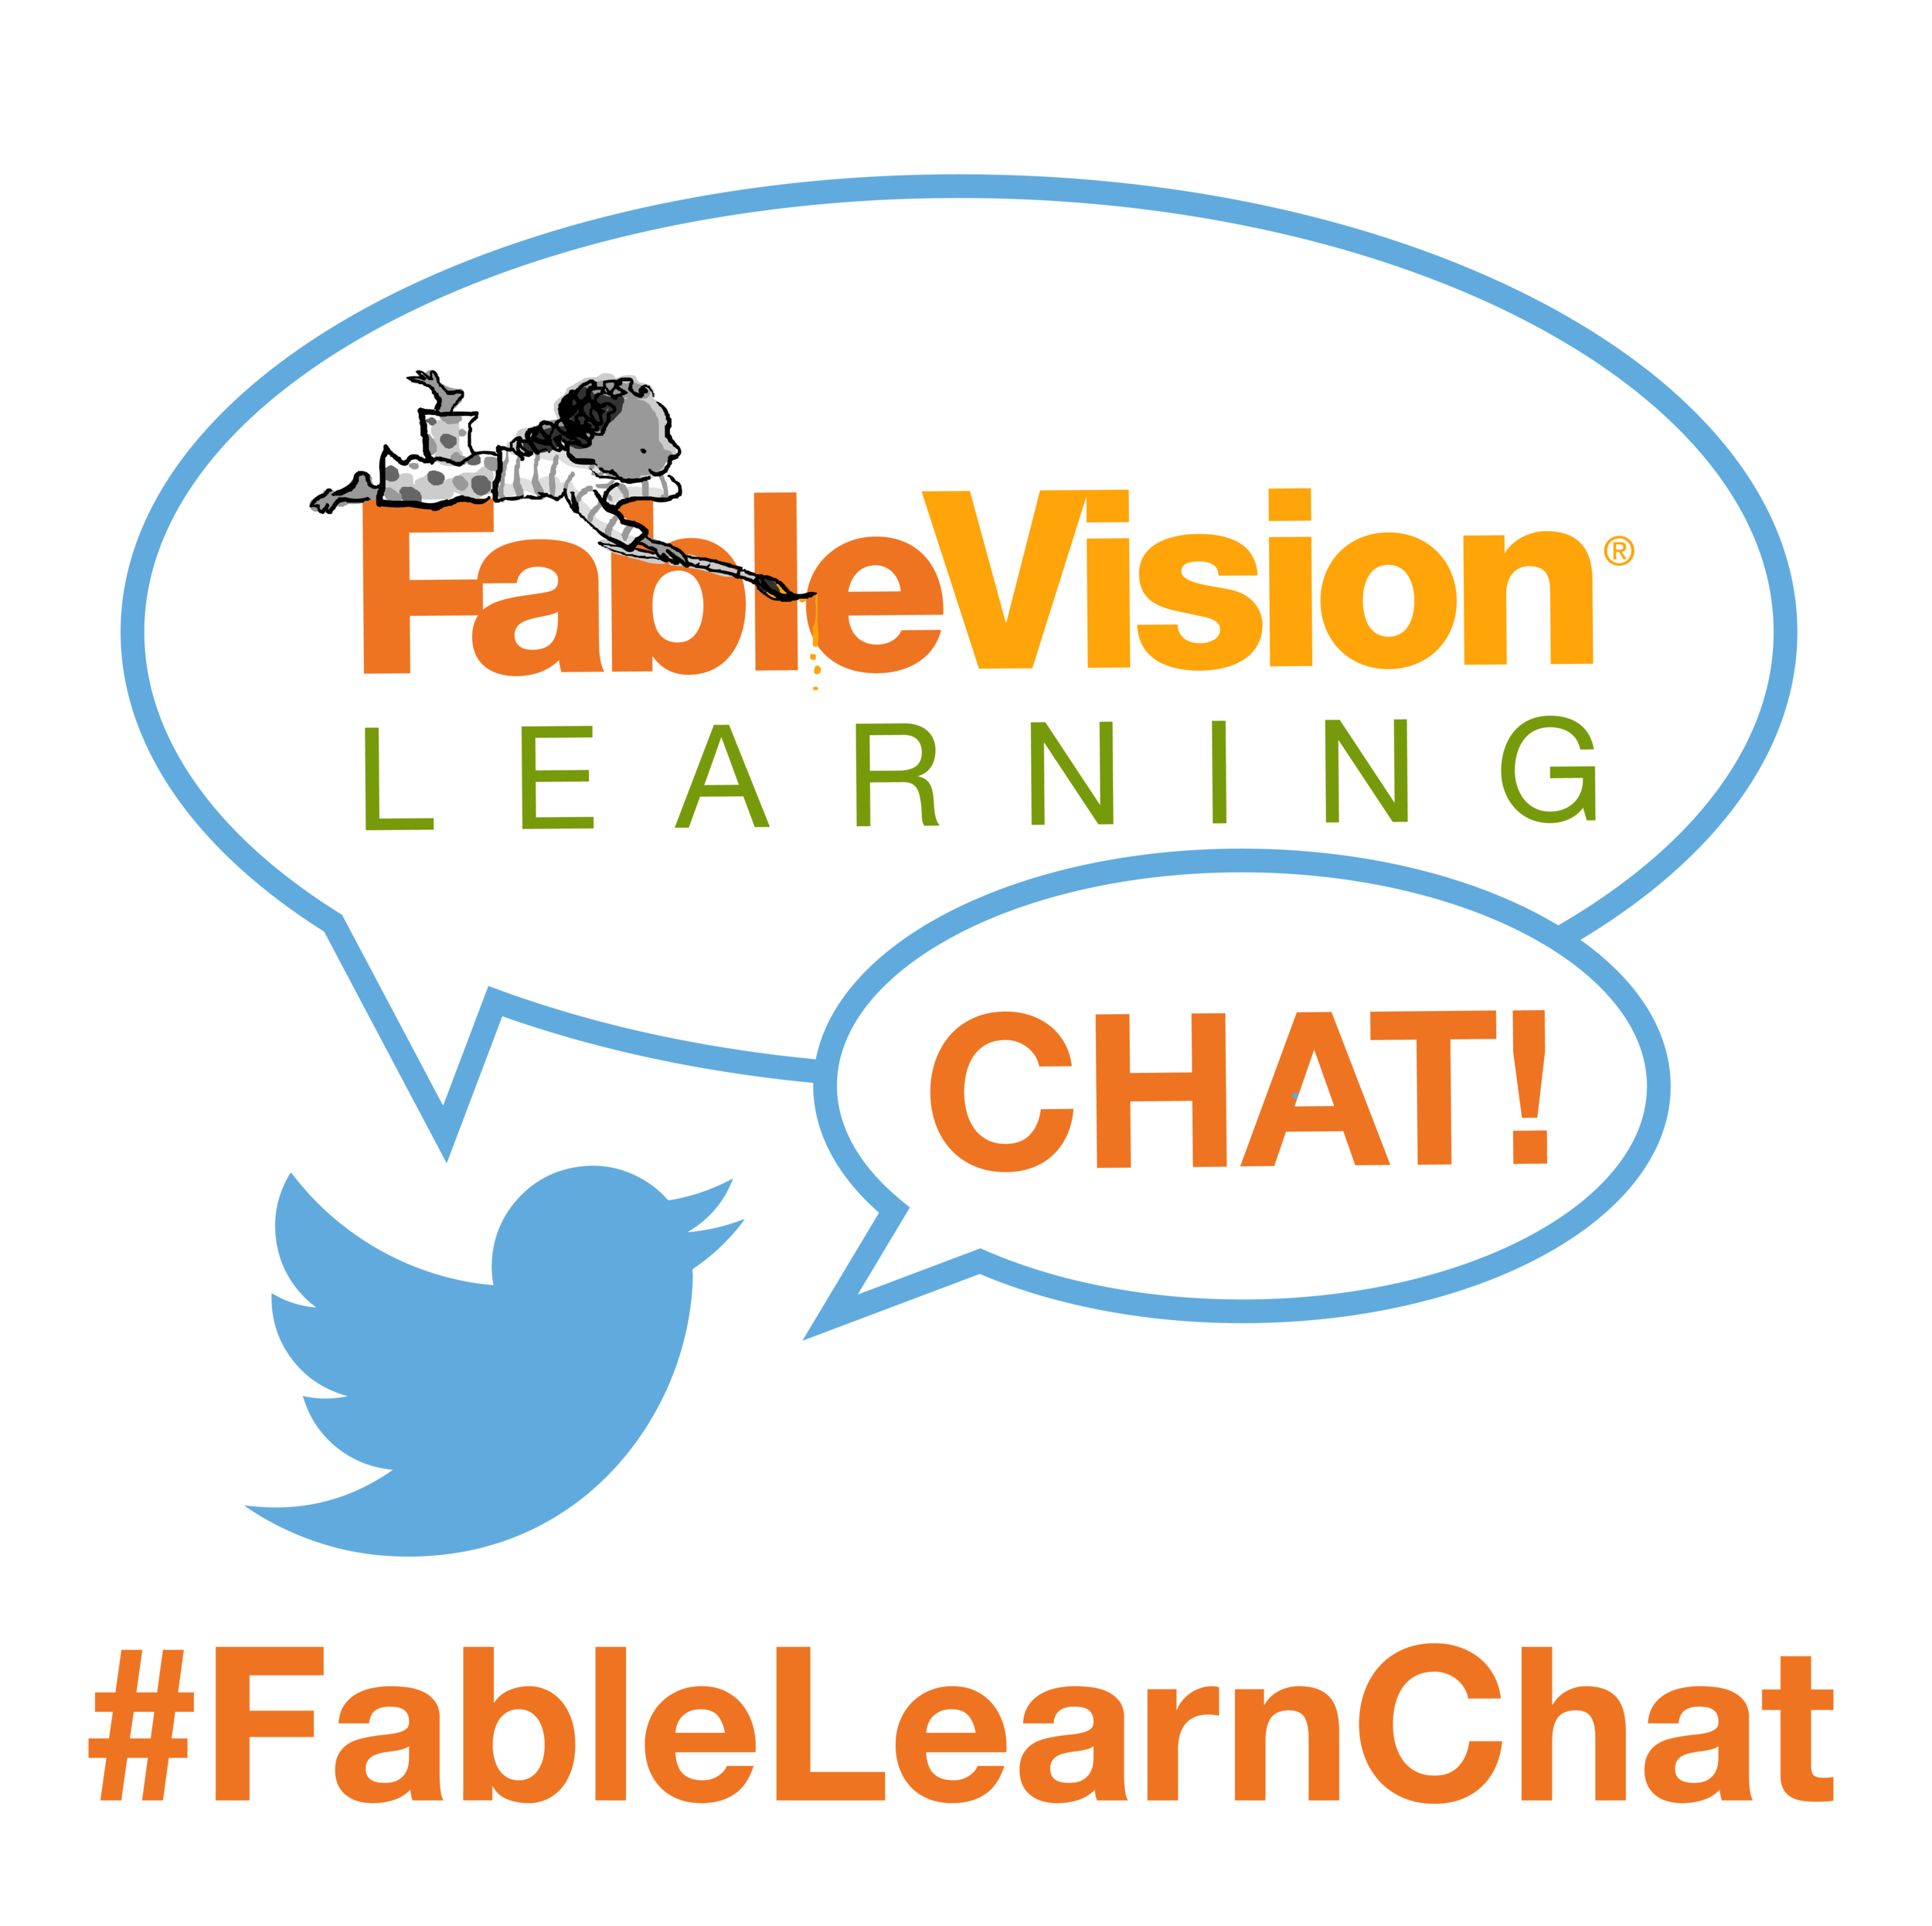 FableVisionLearning_Chat-Hashtag.png